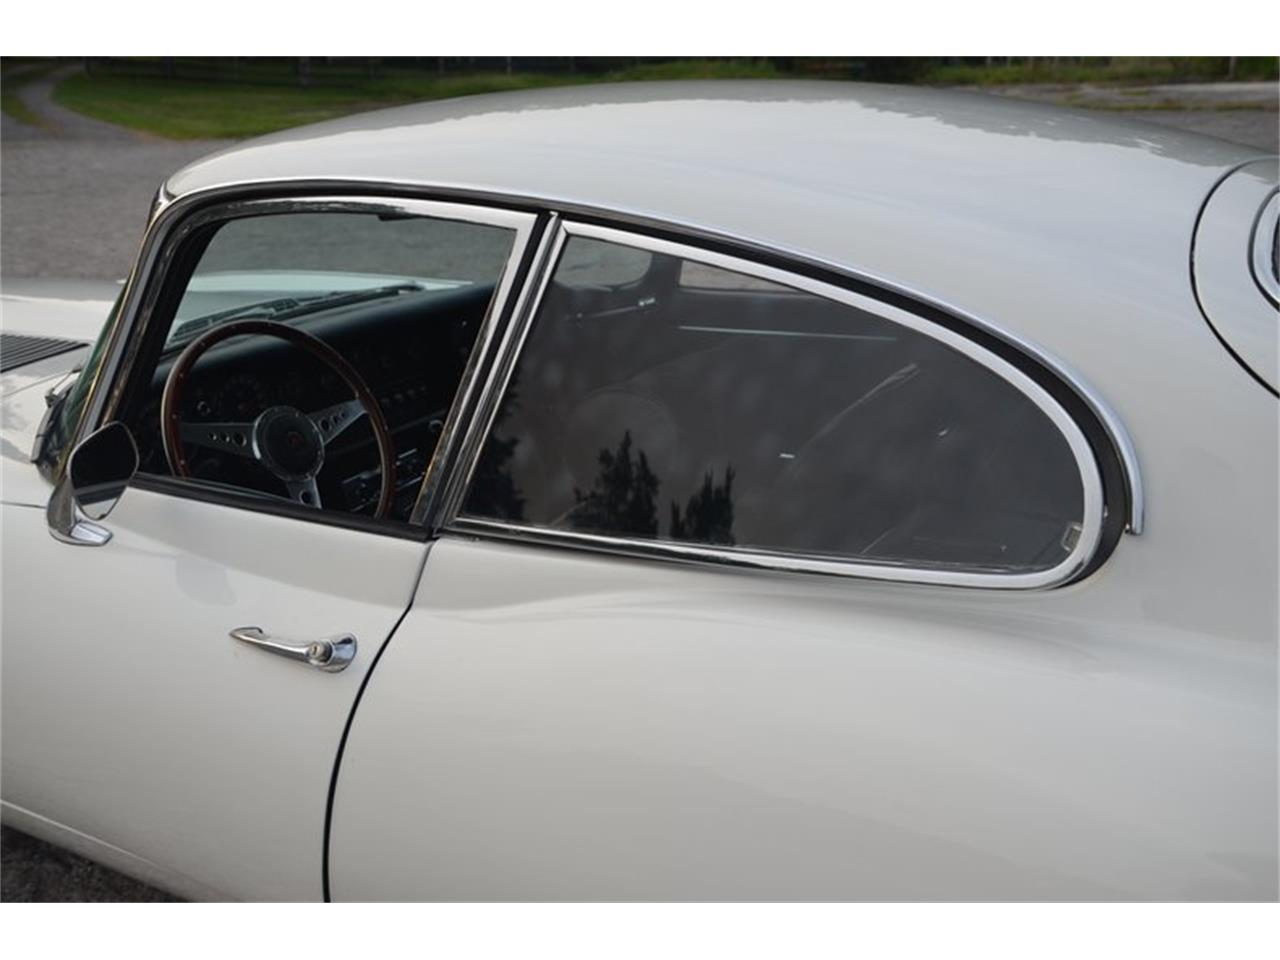 Large Picture of Classic '71 Jaguar E-Type located in Lebanon Tennessee - $54,500.00 - OBGE